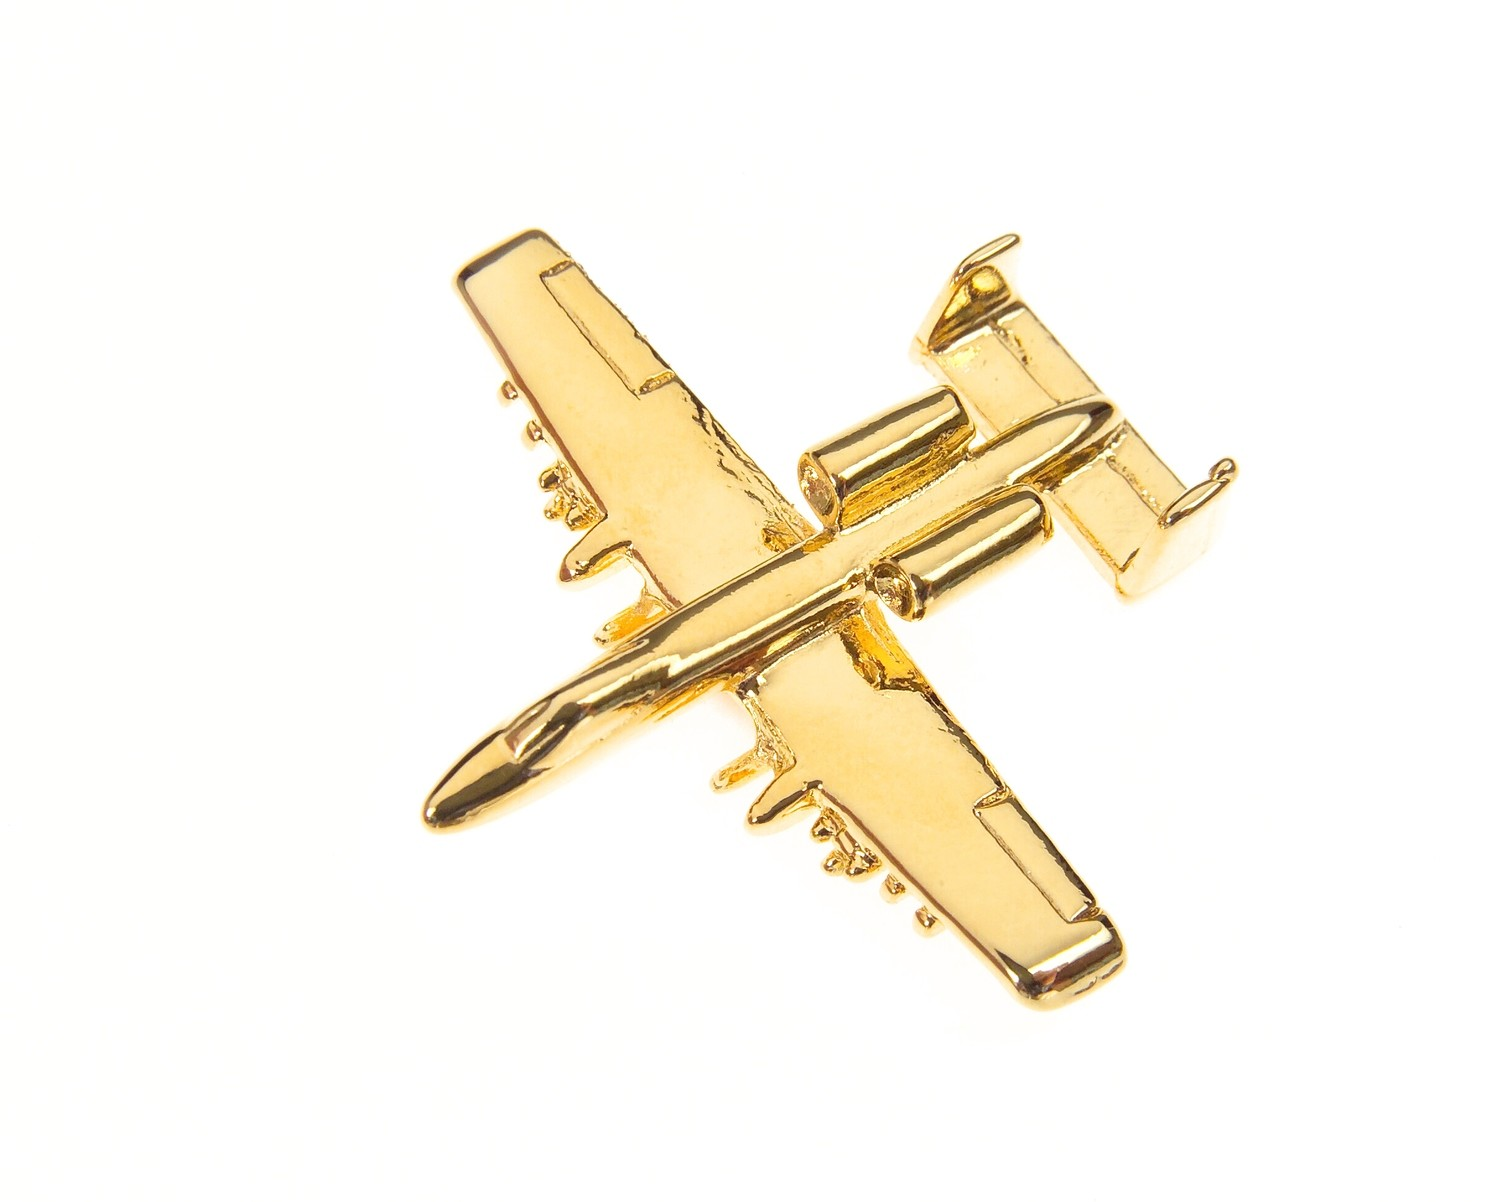 A10 Warthog 'Tank Buster' Gold Plated Tie / Lapel Pin